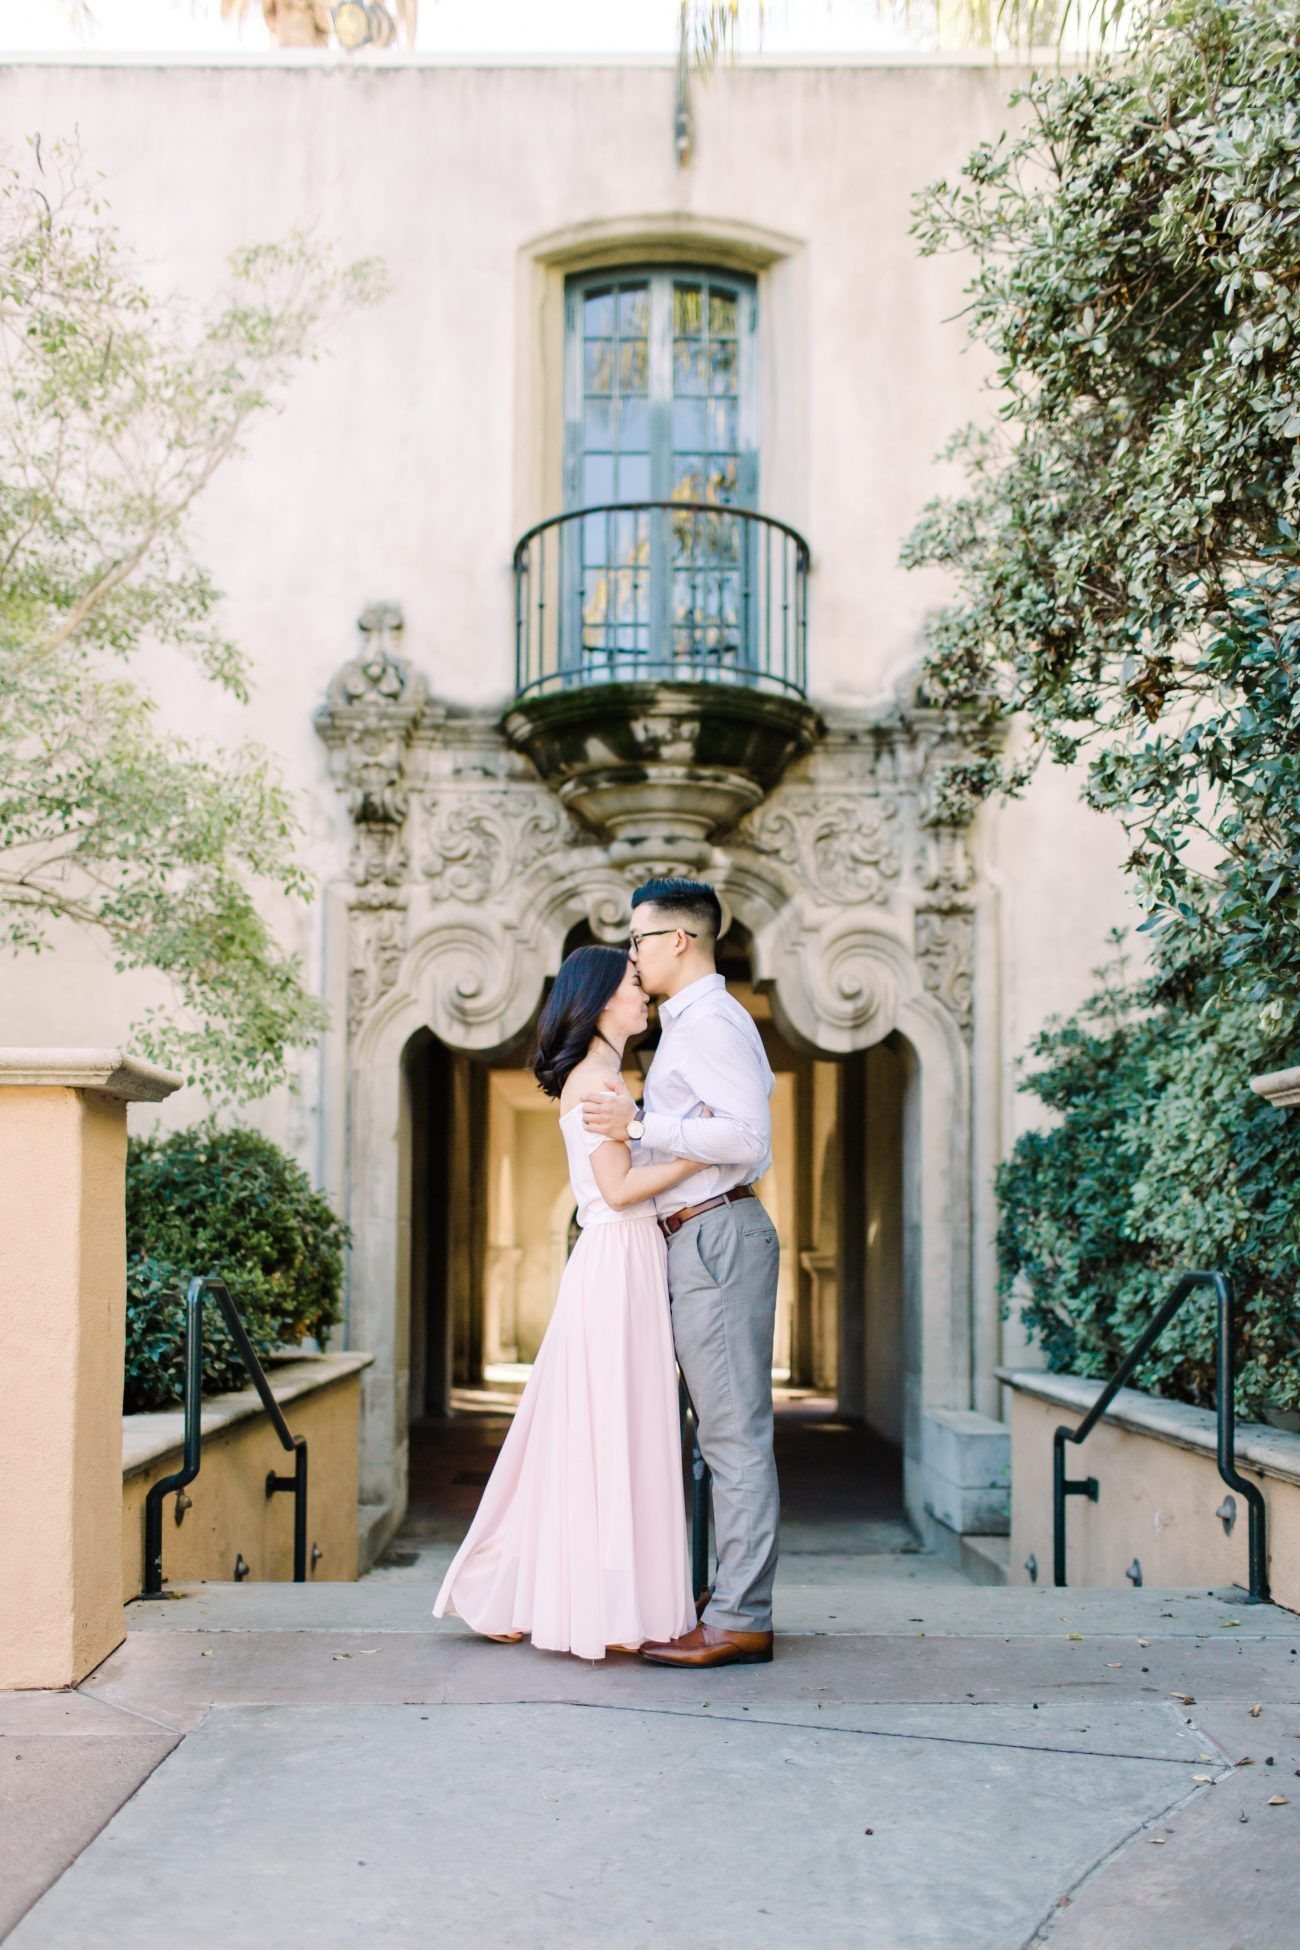 Sunrise Engagement Session at Balboa Park Styled With Fresh, Neutral Colors For an Elegant Look